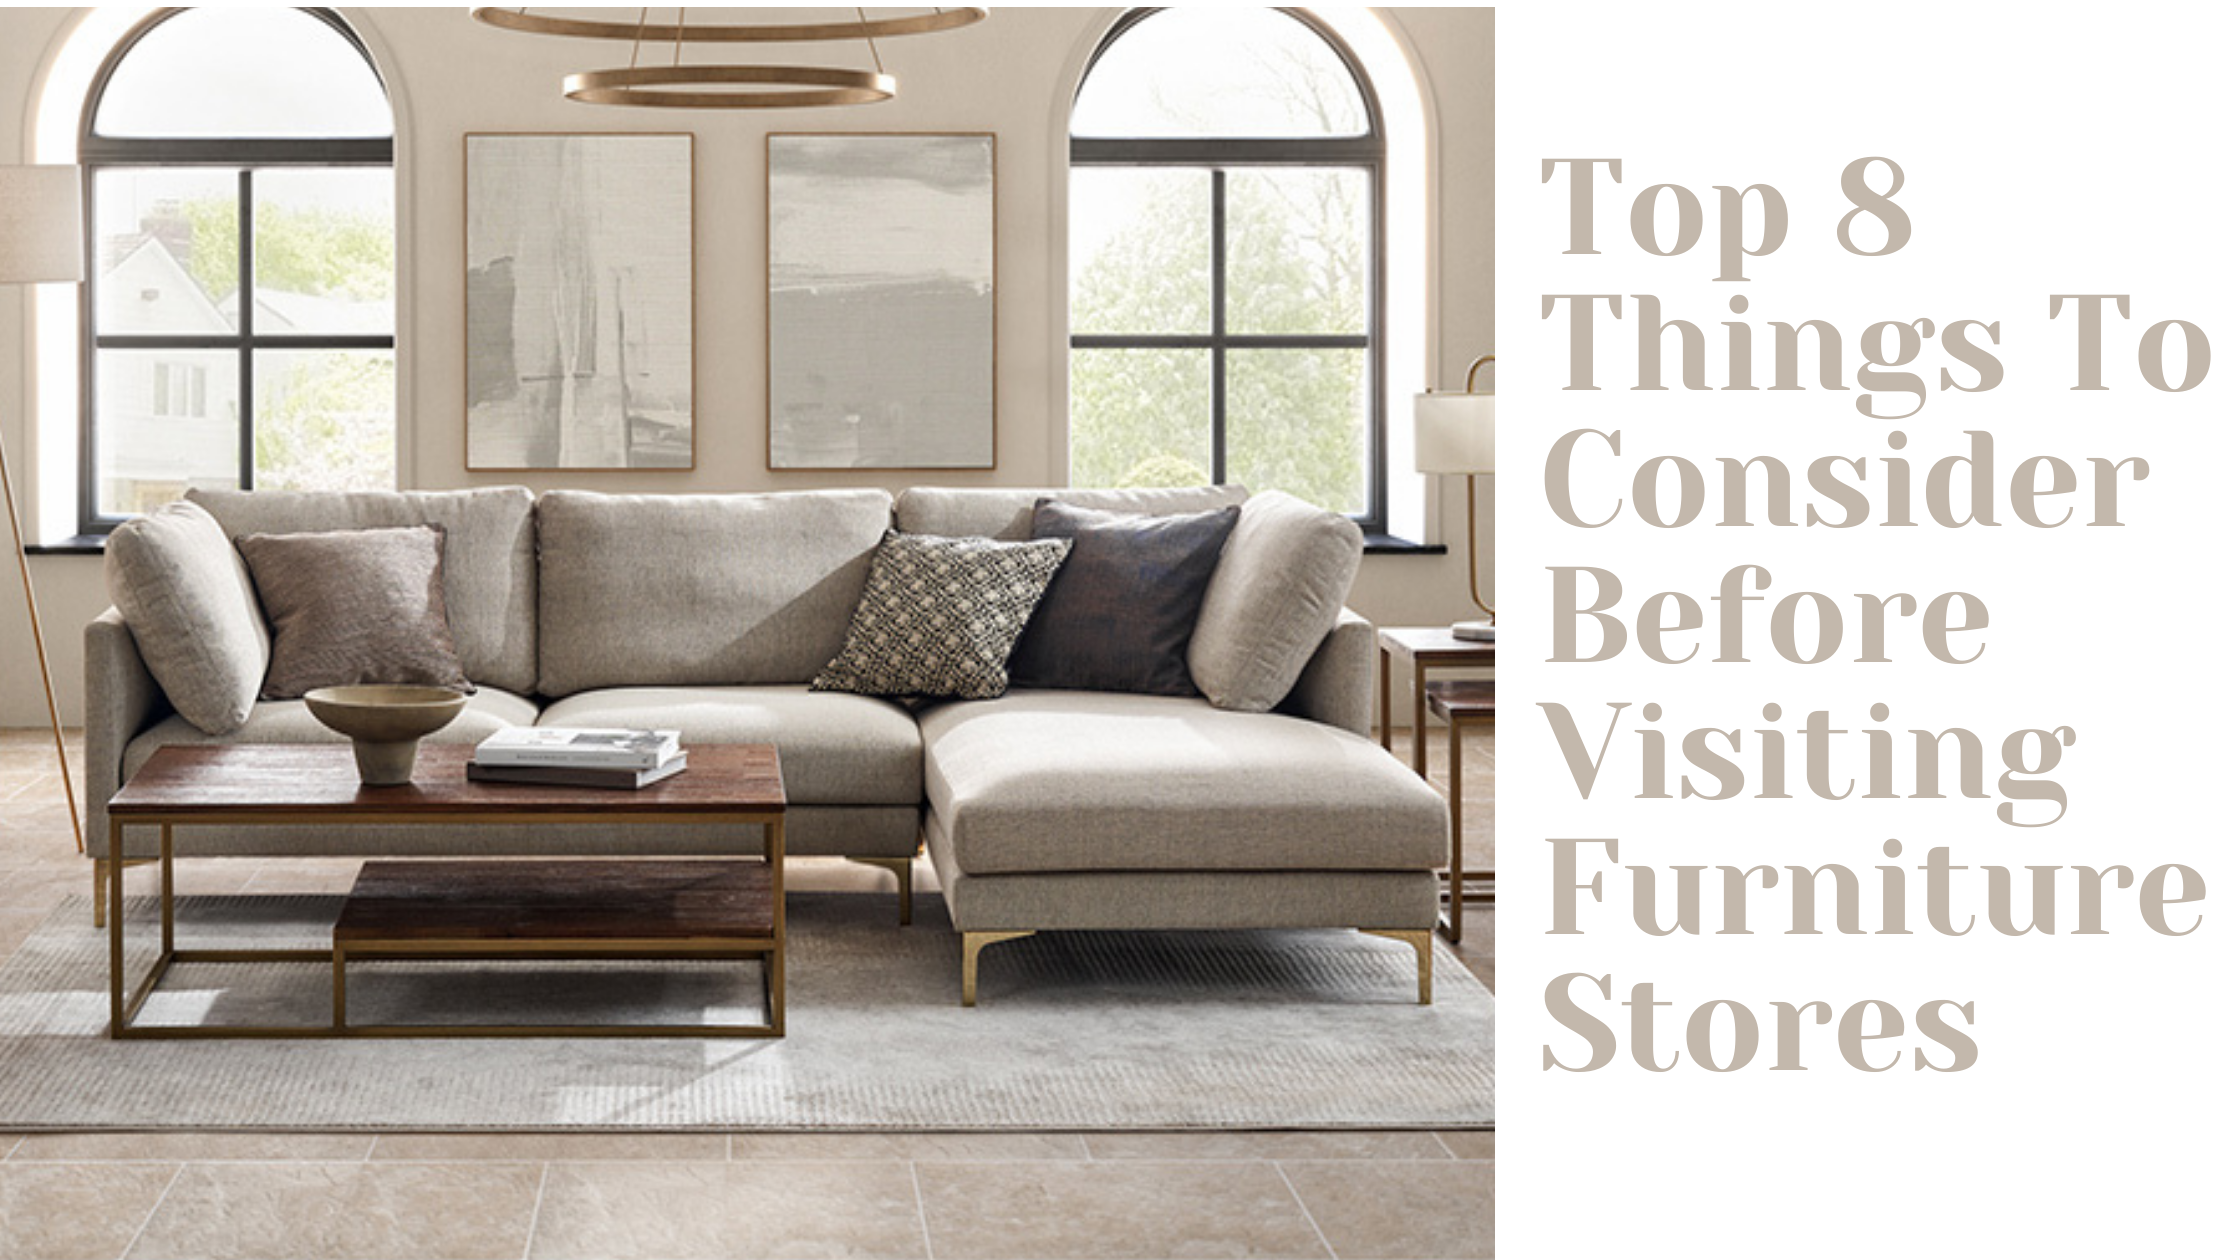 Top 8 Things to Consider Before Visiting Furniture Stores